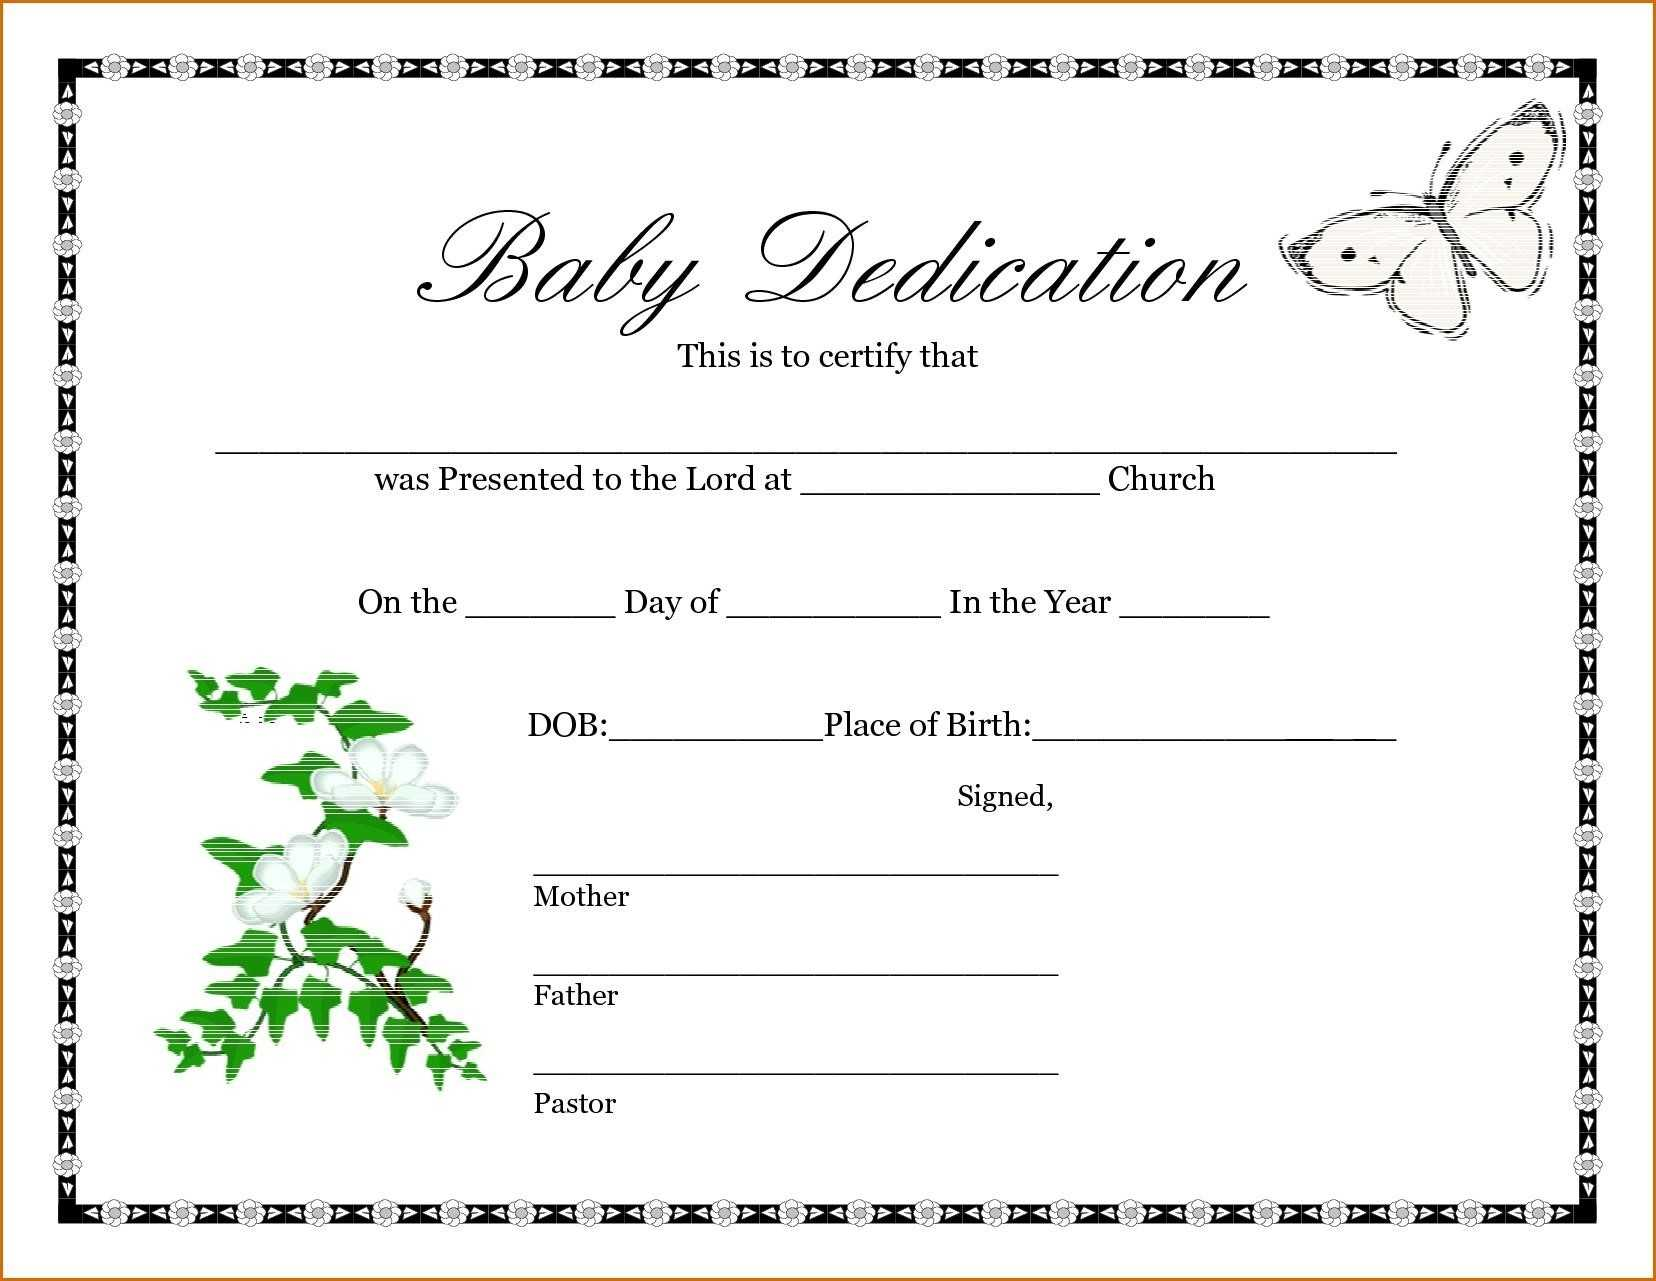 A Birth Certificate Template | Safebest.xyz With Regard To Build A Bear Birth Certificate Template